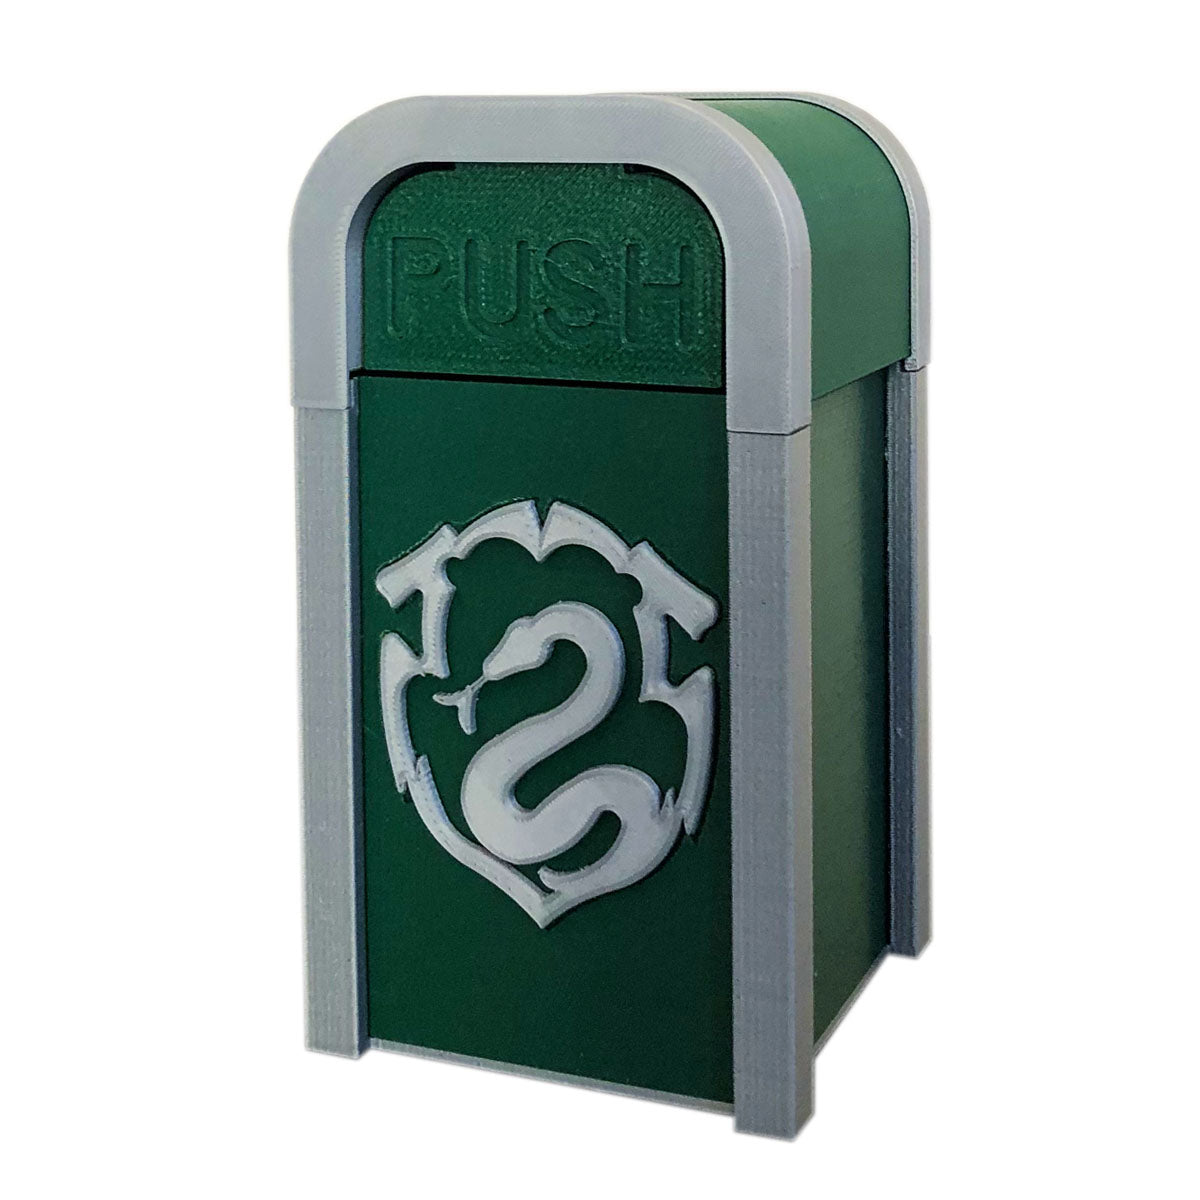 Ambitious Serpent Desktop Trash Can